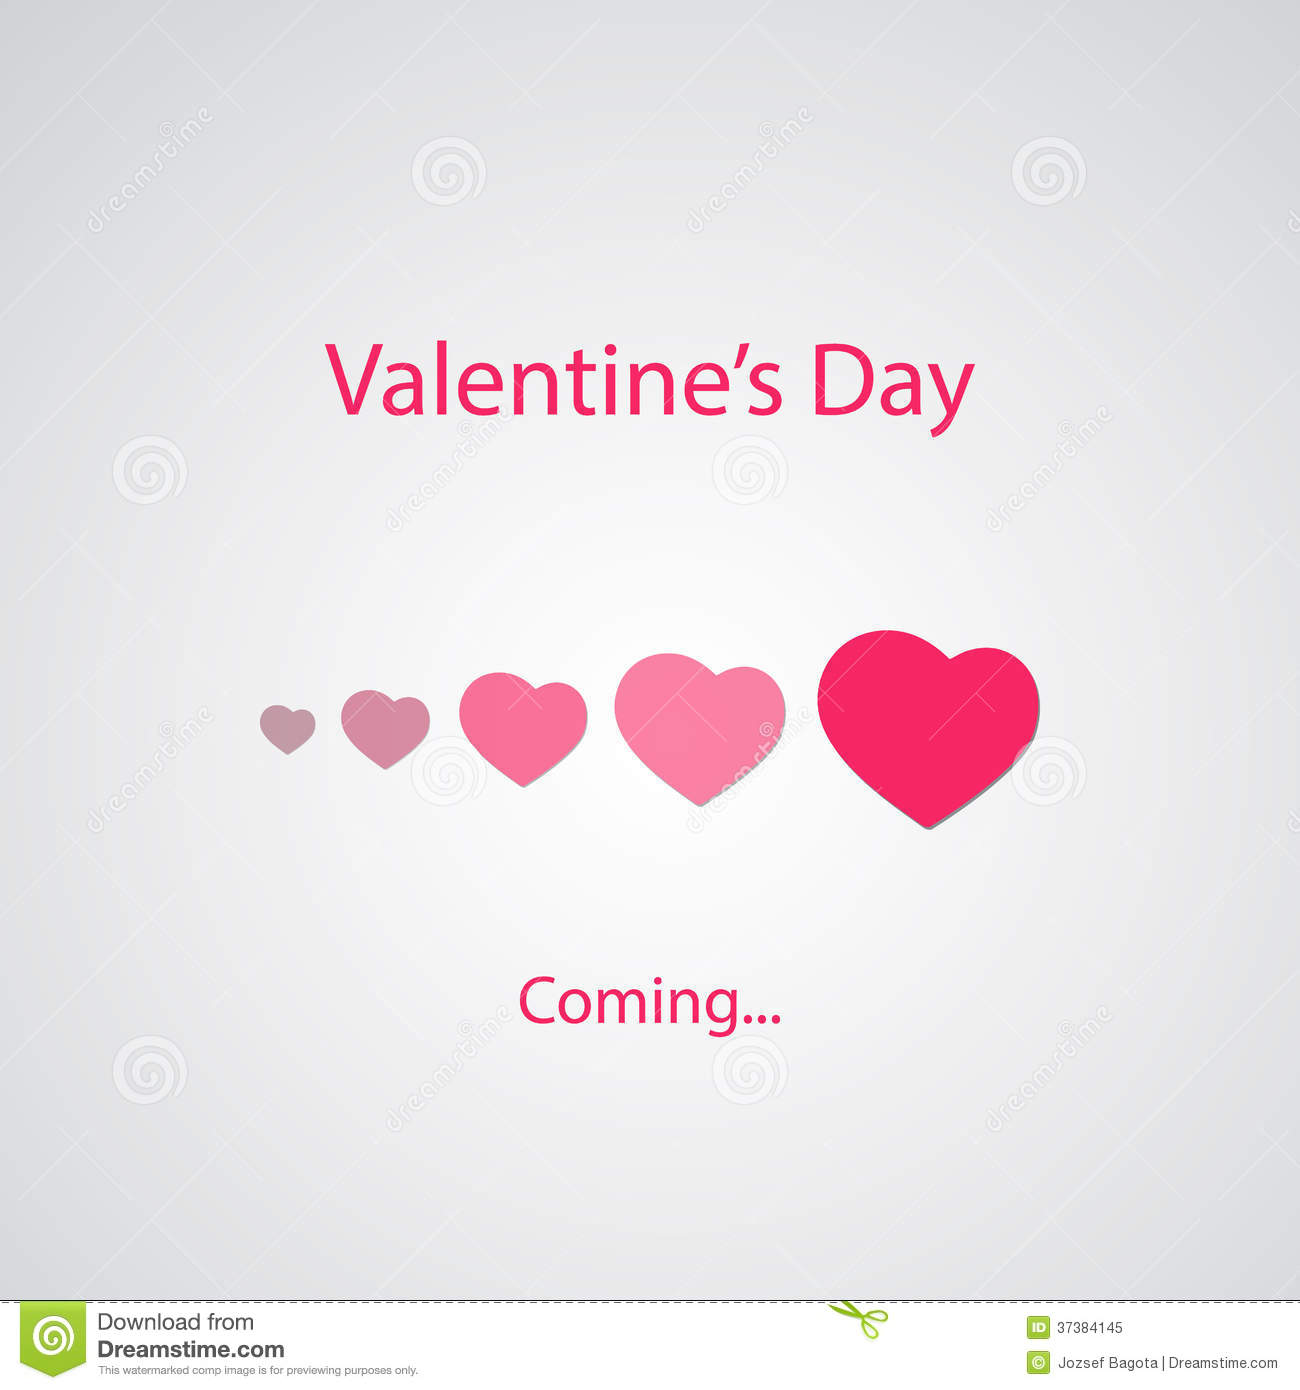 Valentine s Day s Coming - Greeting Card Concept